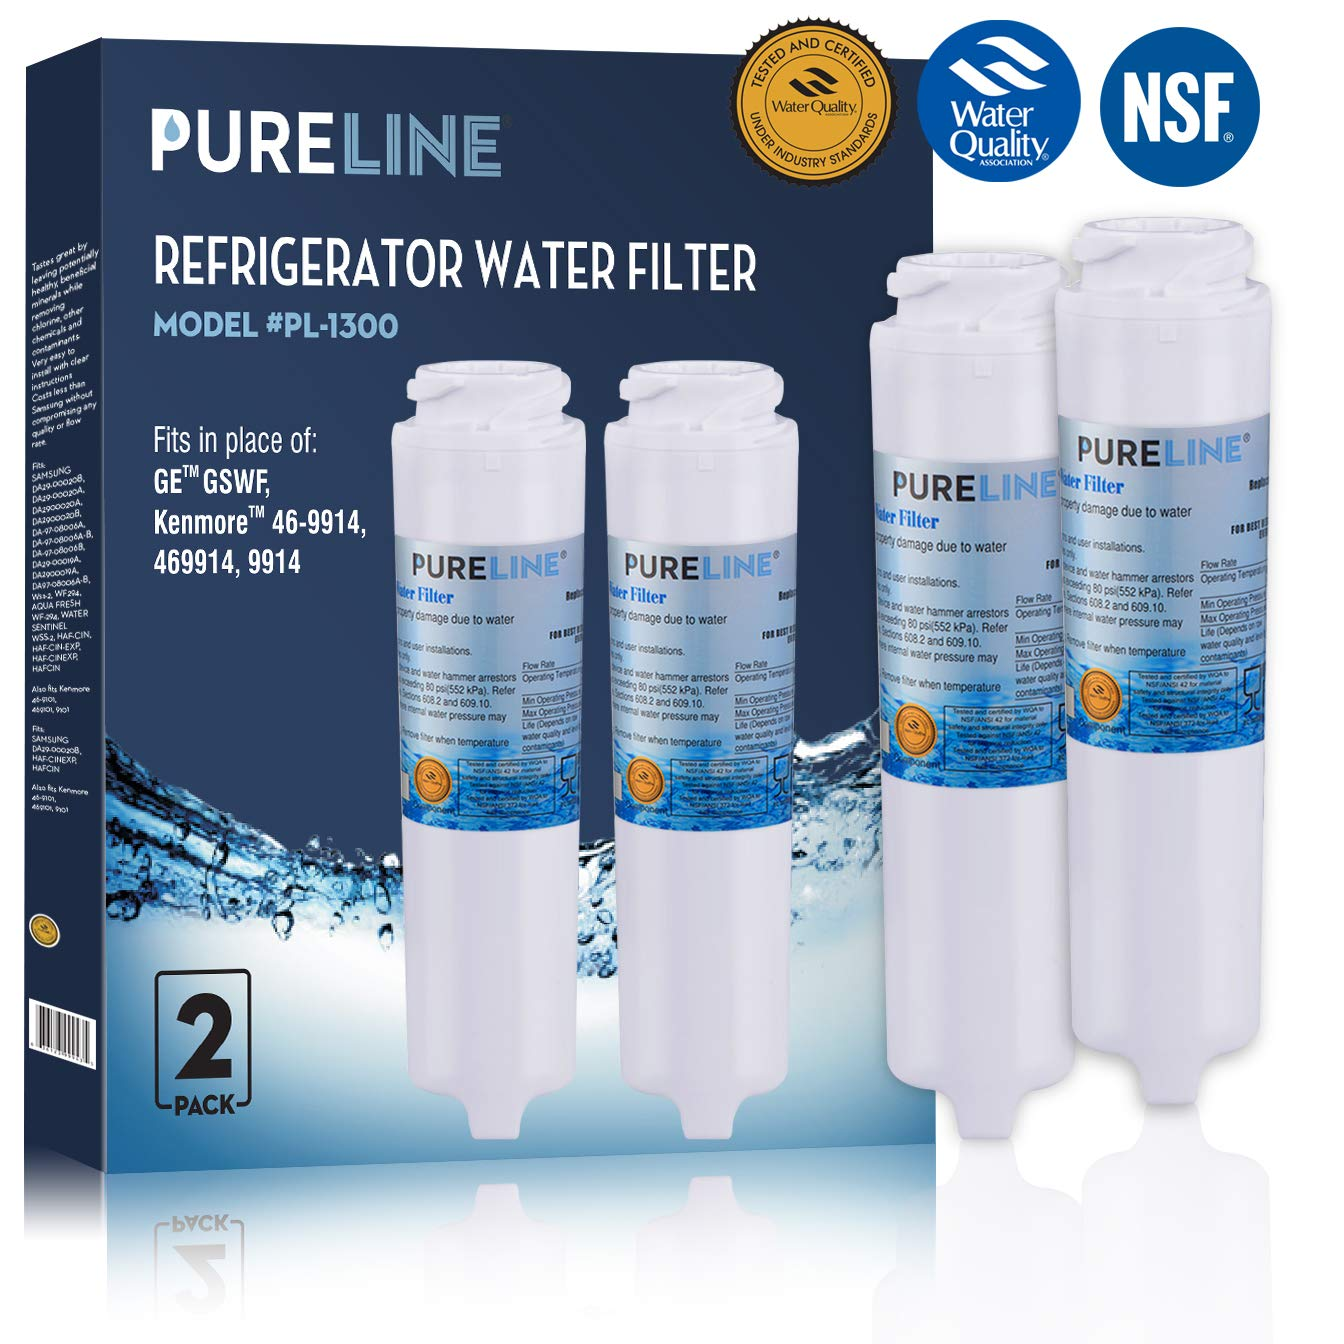 GE GSWF Fast Flow Compatible Water Filter Replacement For GE GSWF Refrigerator Water Filter By Pure Line (2 PACK)